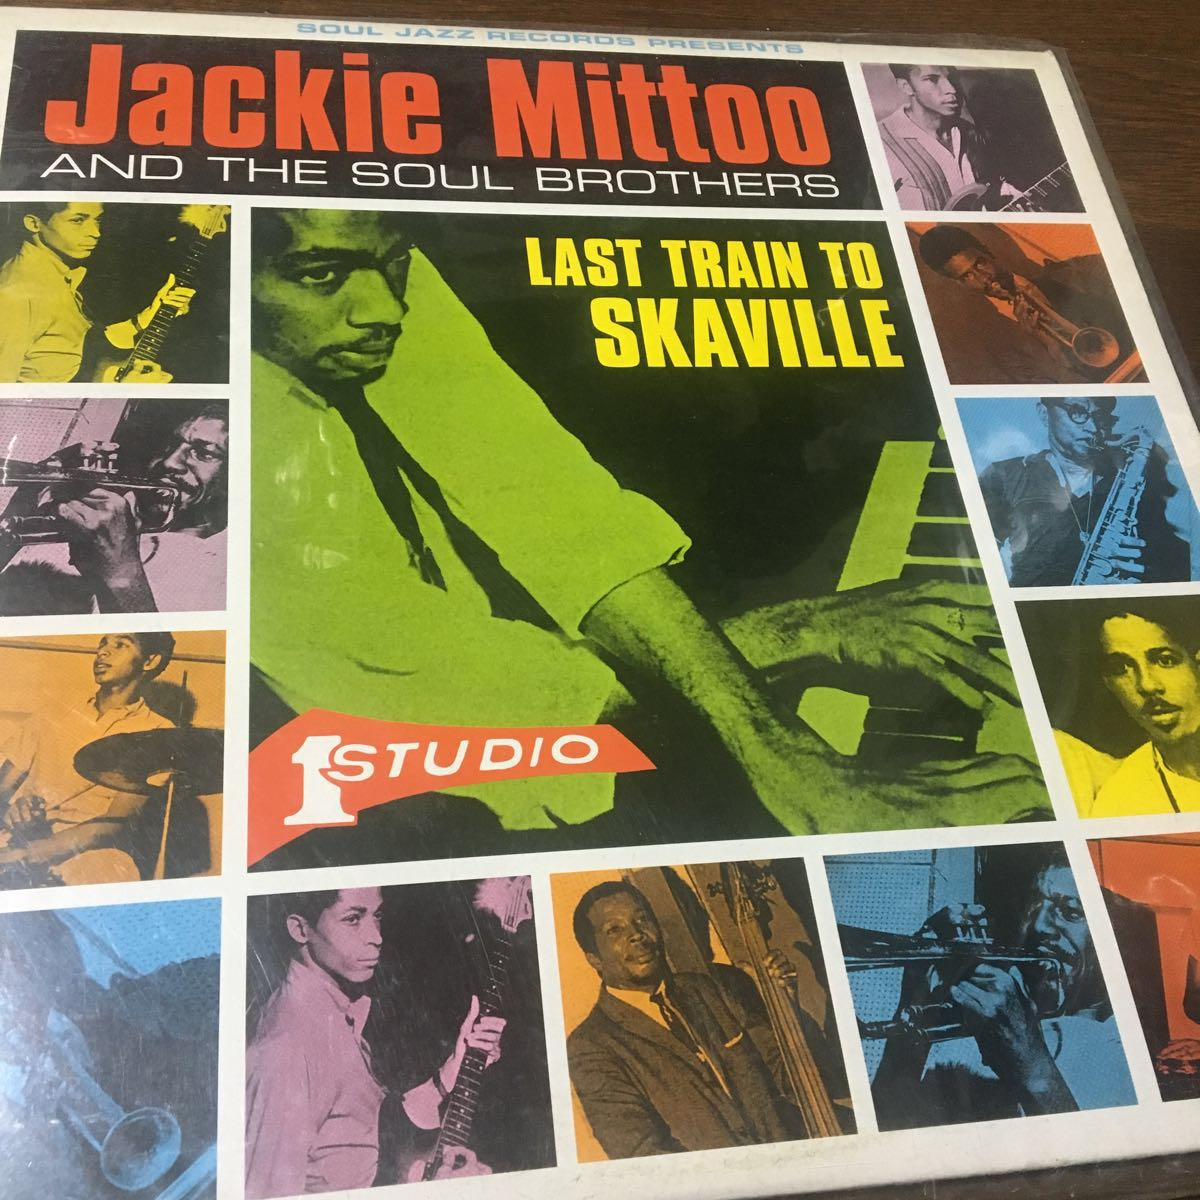 Jackie Mittoo AND THE SOUL BROTHERS★LAST TRAIN TO SKAVILLE